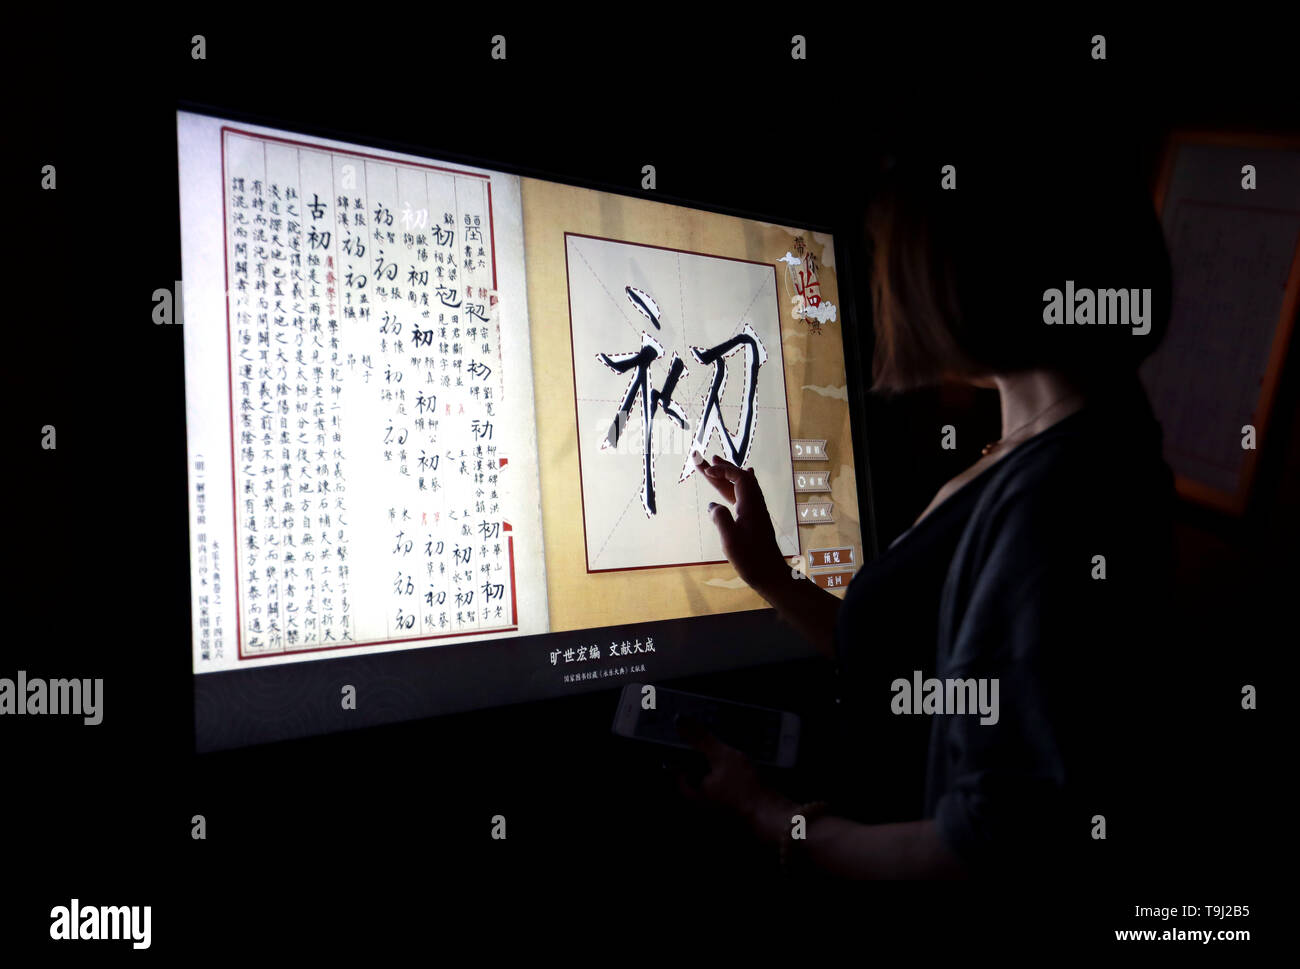 Beijing, China. 18th May, 2019. A visitor copies characters at an exhibition on Yongle Encyclopaedia at National Library of China in Beijing, capital of China, May 18, 2019. Yongle Encyclopaedia is China's first encyclopaedia compiled in the Ming Dynasty (1368-1644). China is holding a rich variety of exhibitions and activities on the culture of Asian countries and regions as well as exchanges among them. Credit: Pan Xu/Xinhua/Alamy Live News - Stock Image